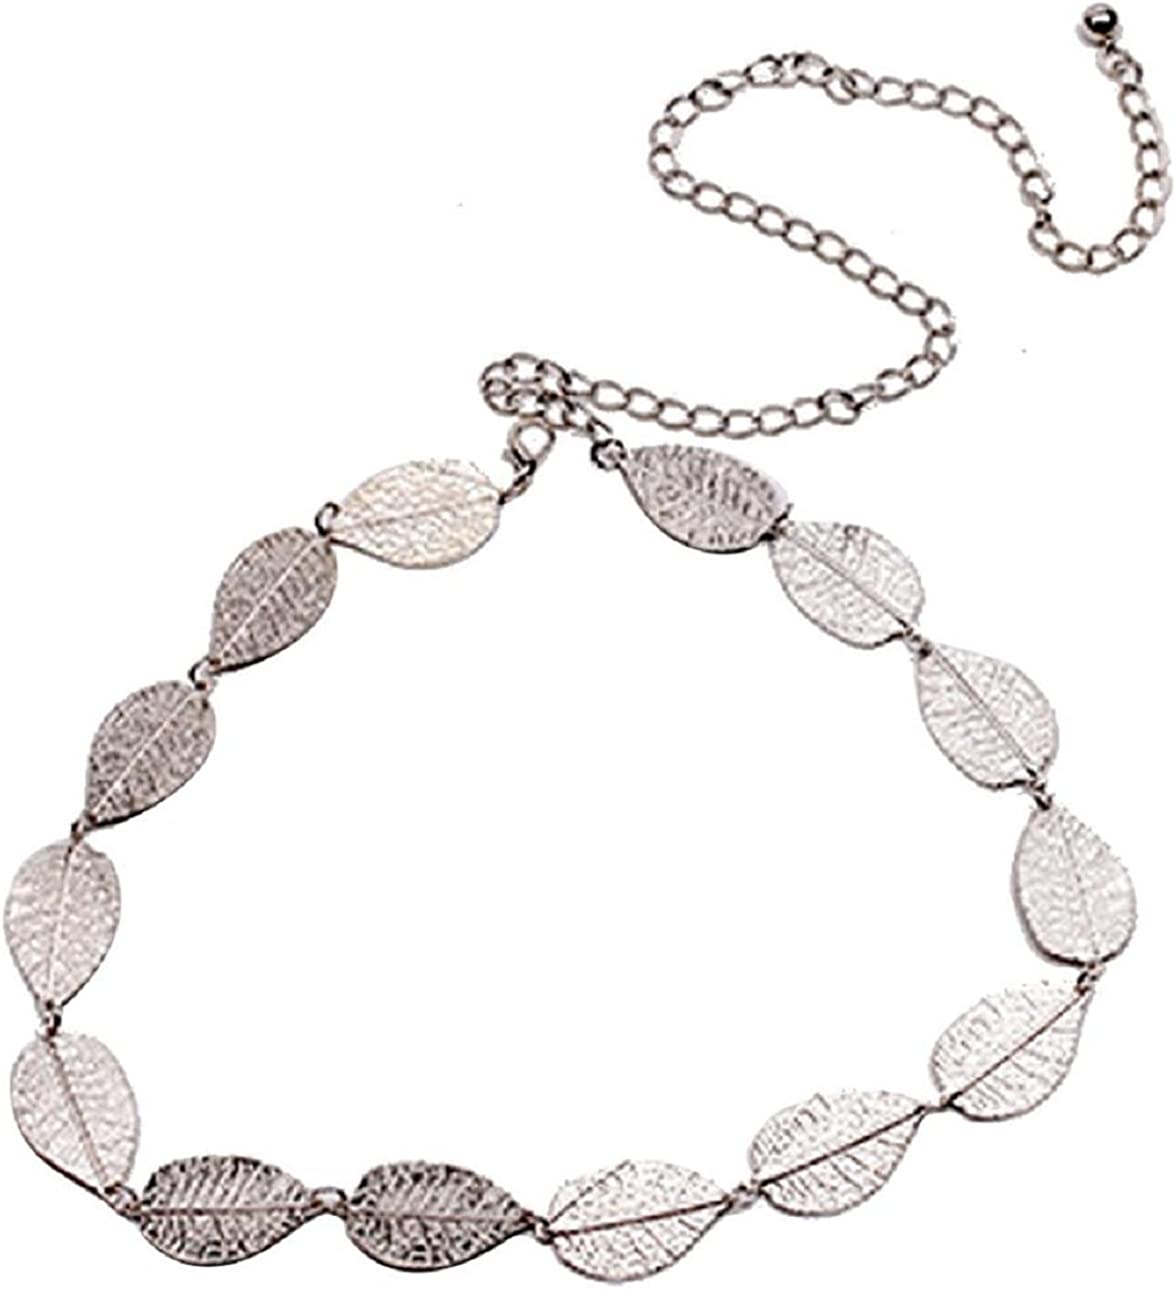 TONSEE Womens Lady Fashion Metal Leaves Chain Belt Chain